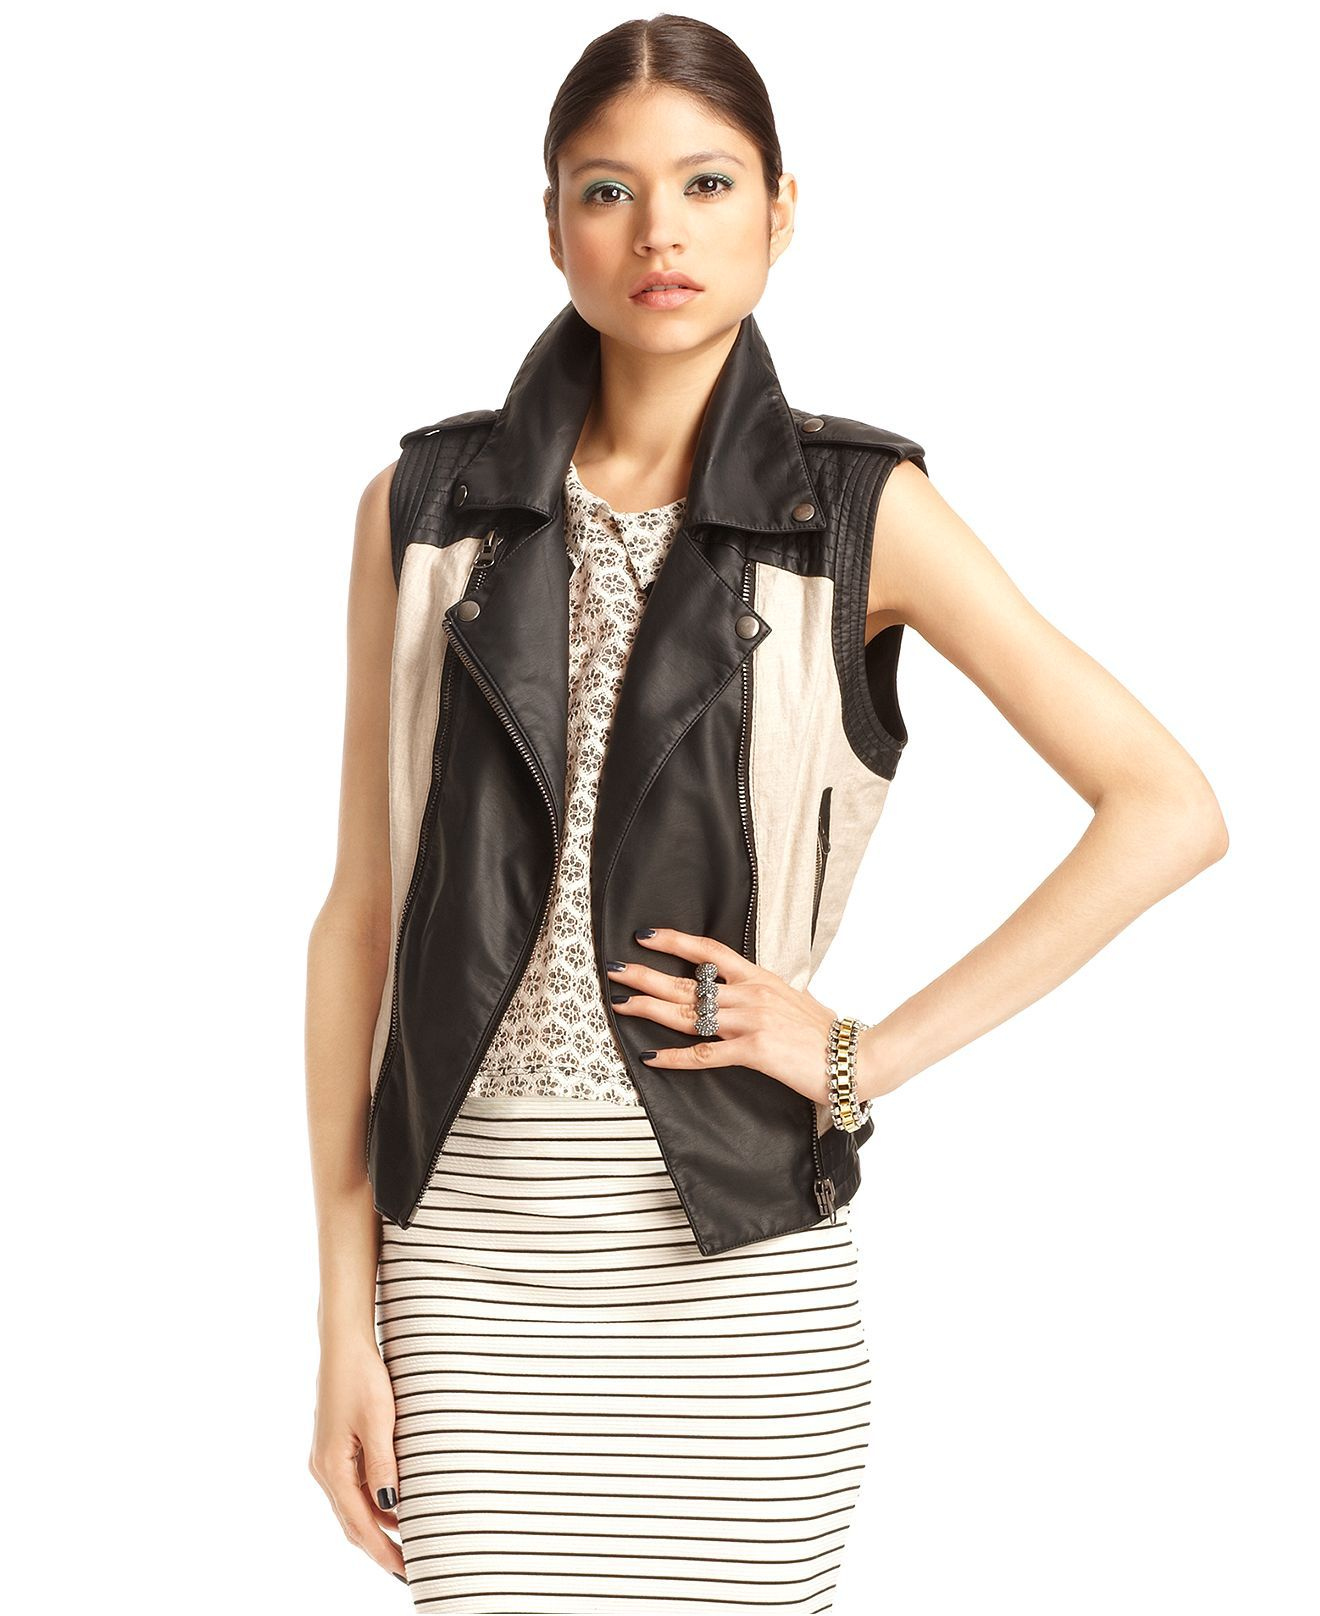 64 Bar Iii Vest Sleeveless Faux Leather Motorcycle Jackets Blazers Women